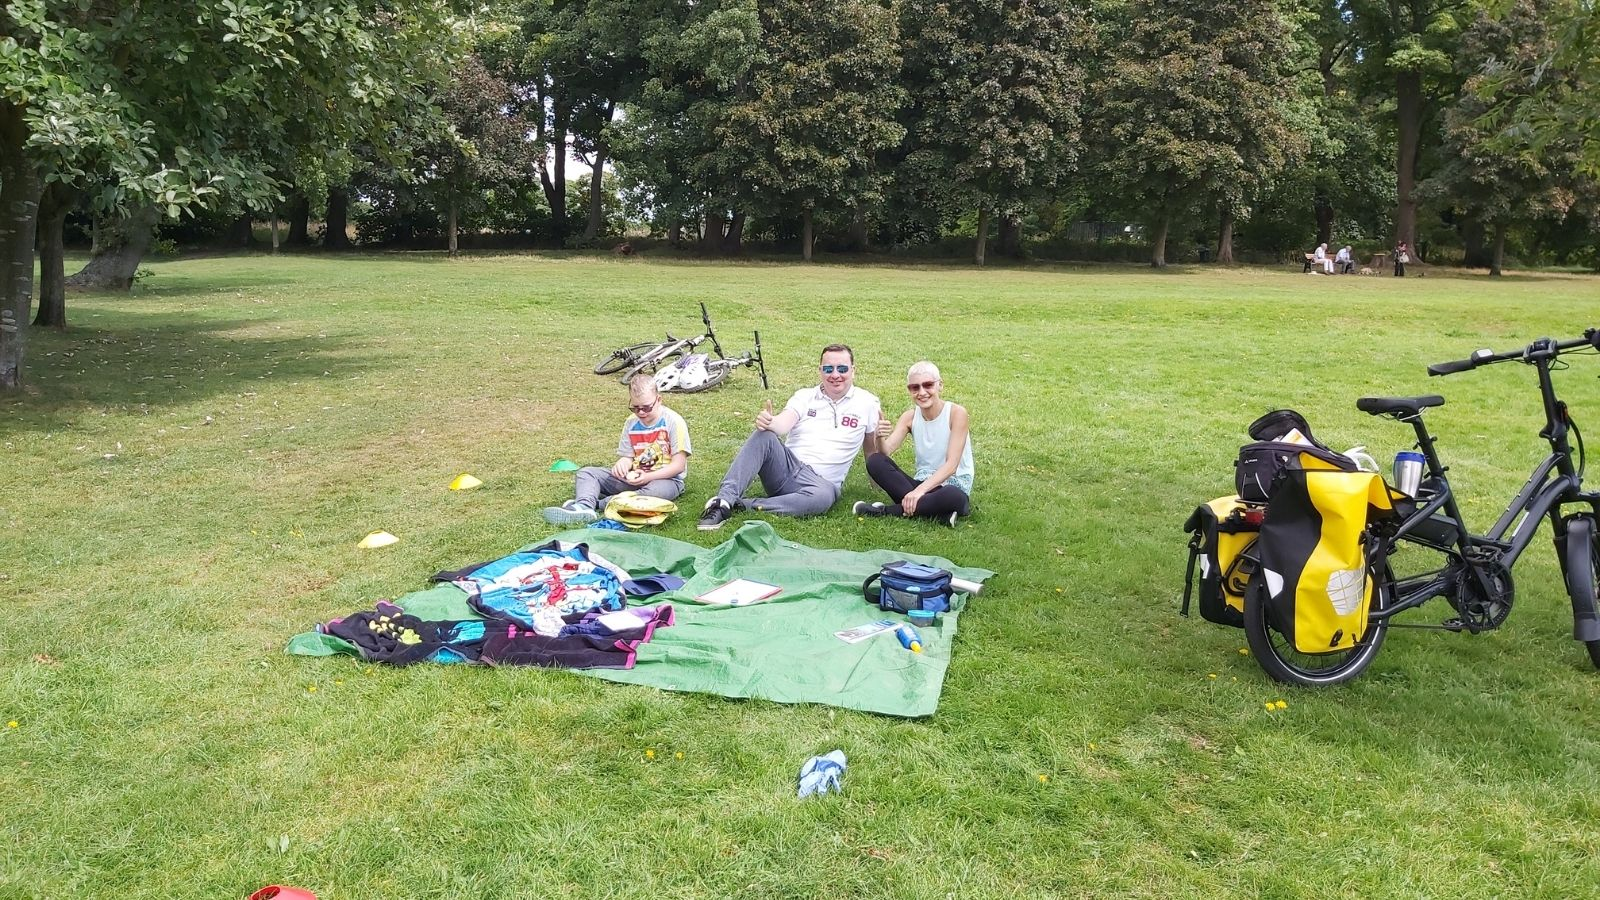 Josh enjoying a picnic in the park after a cycle ride